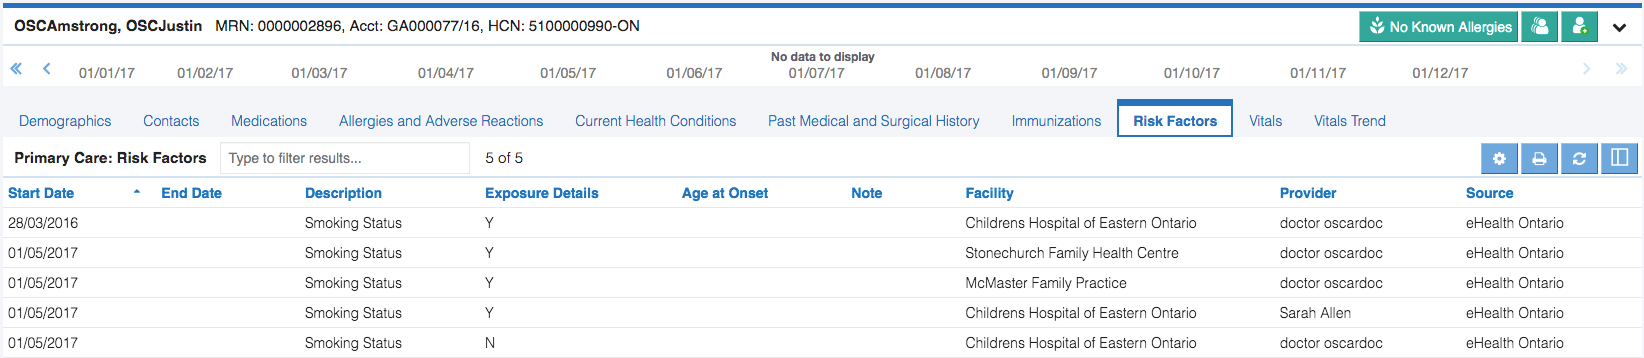 Image of primary care risk factors tab